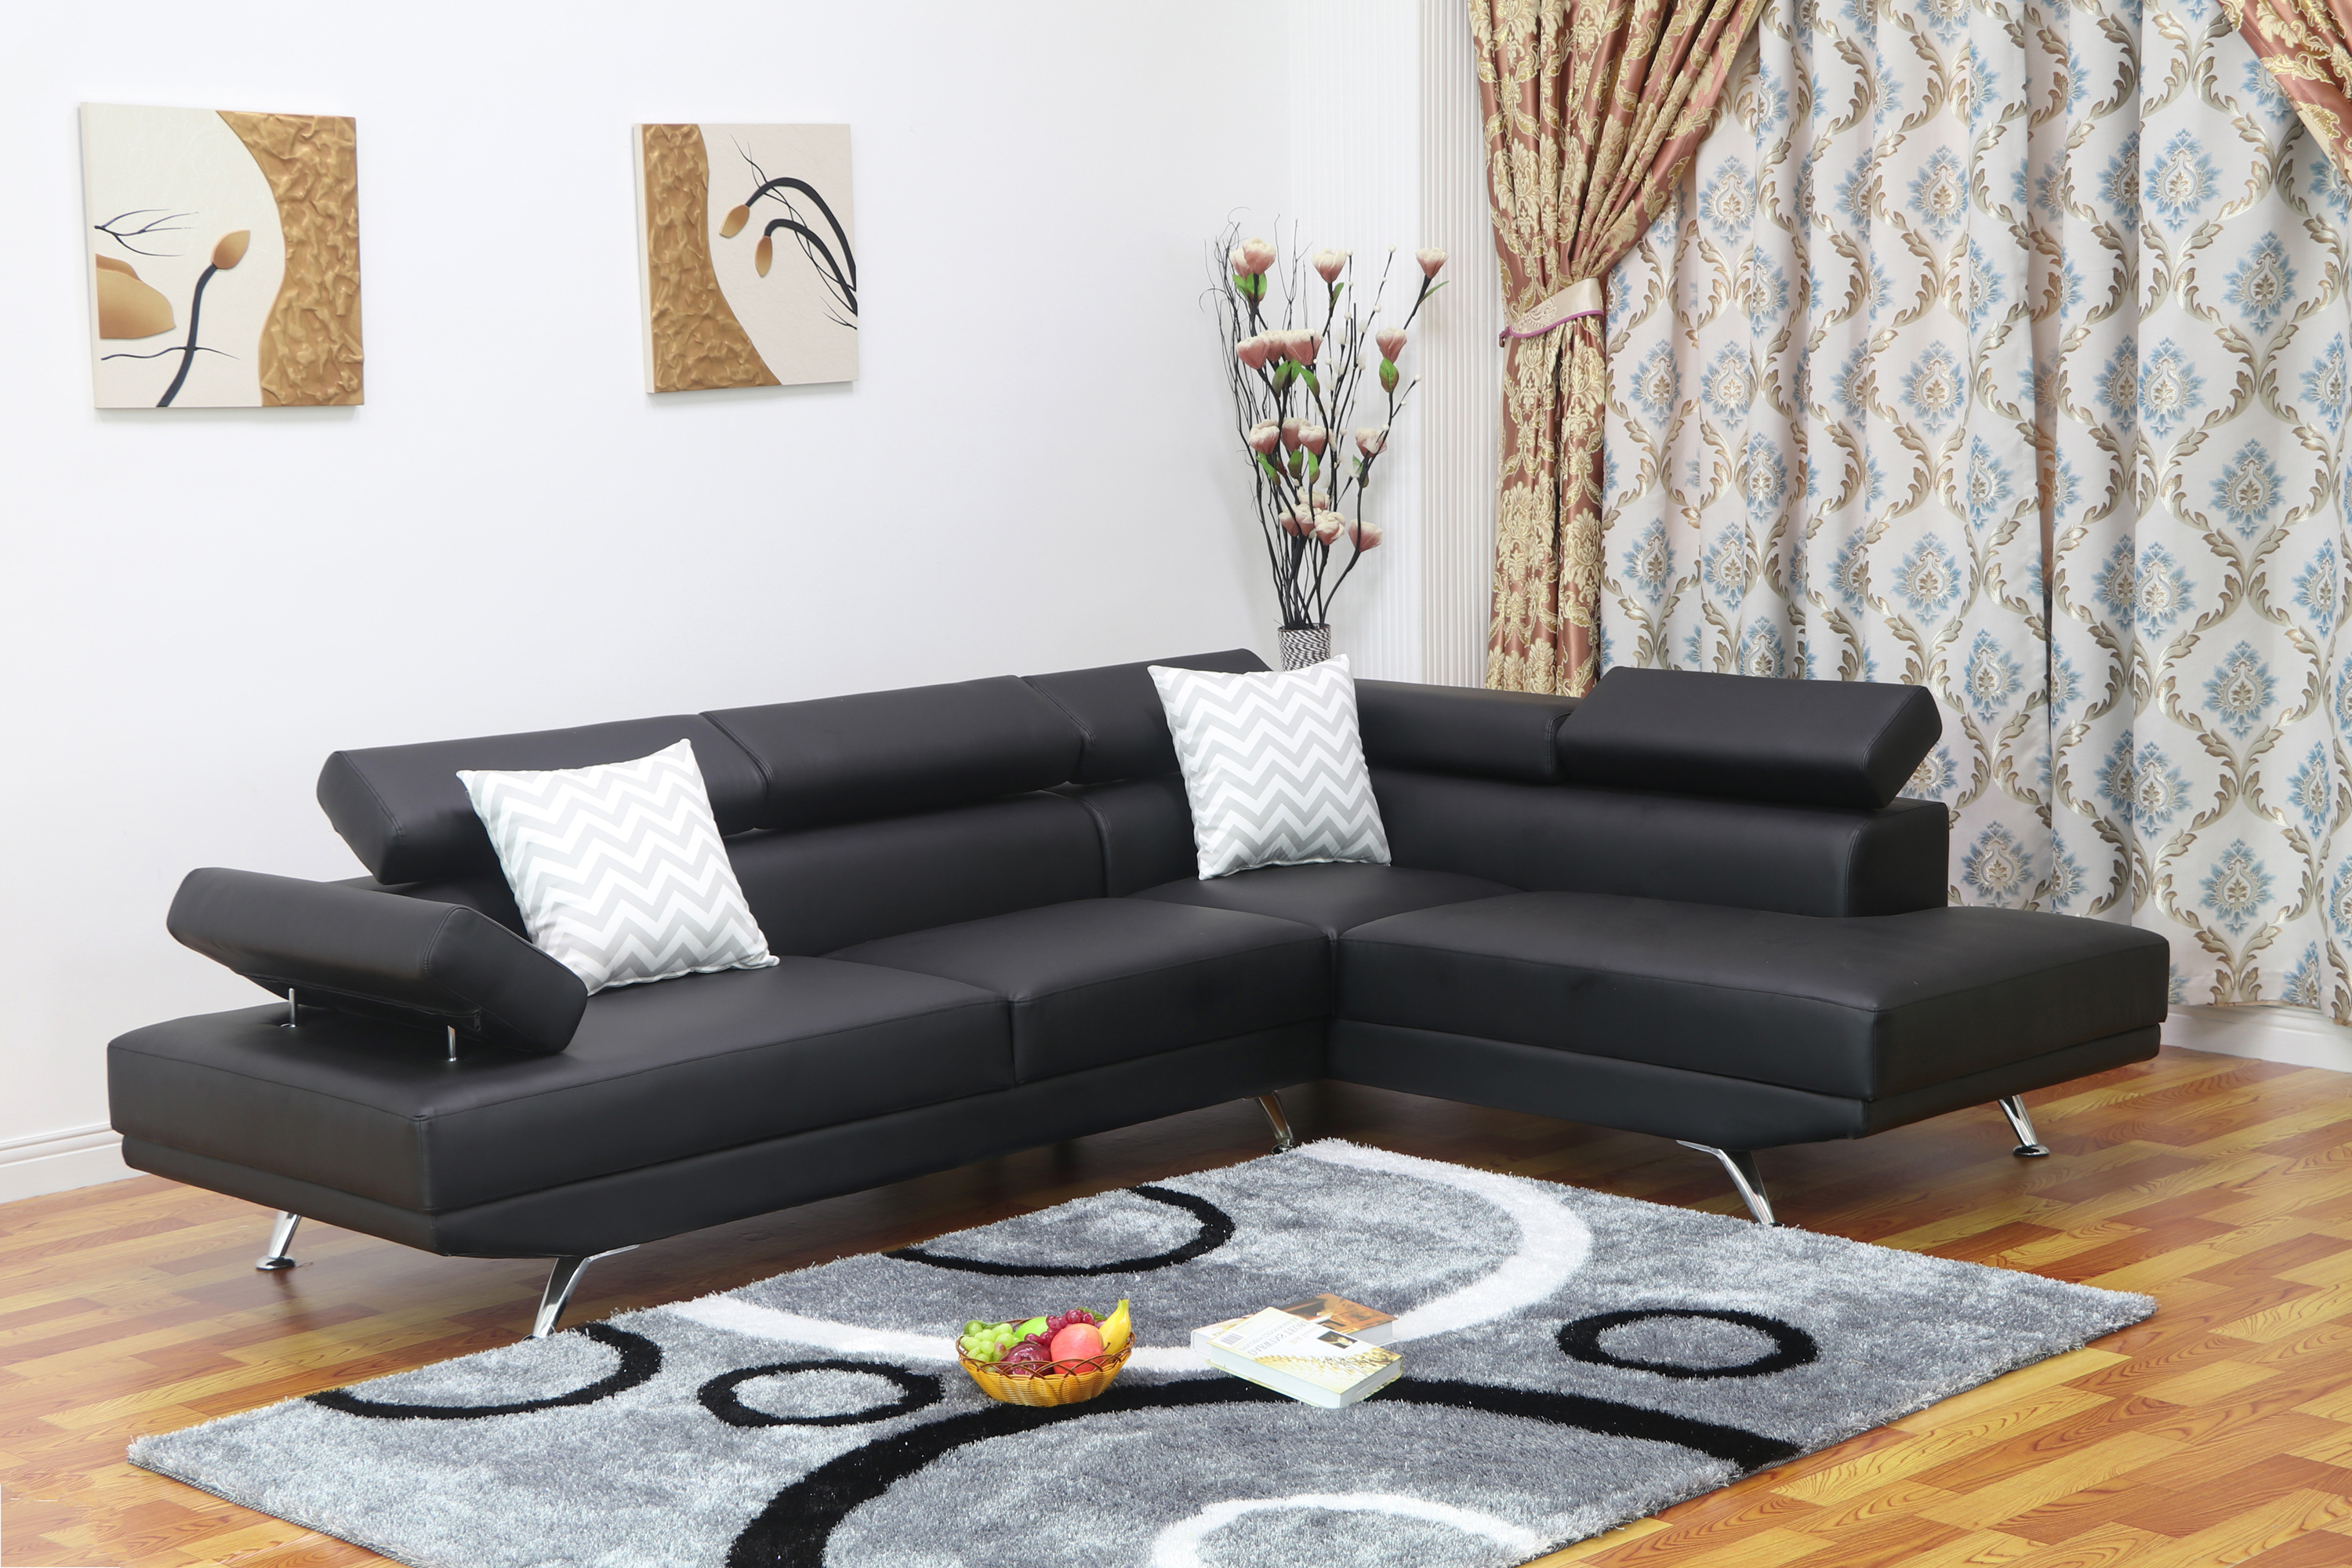 Sofia 2 pc Black Faux Leather Modern Living Room Right Facing Chaise Sectional Sofa set  sc 1 st  Walmart : black leather sectional couches - Sectionals, Sofas & Couches